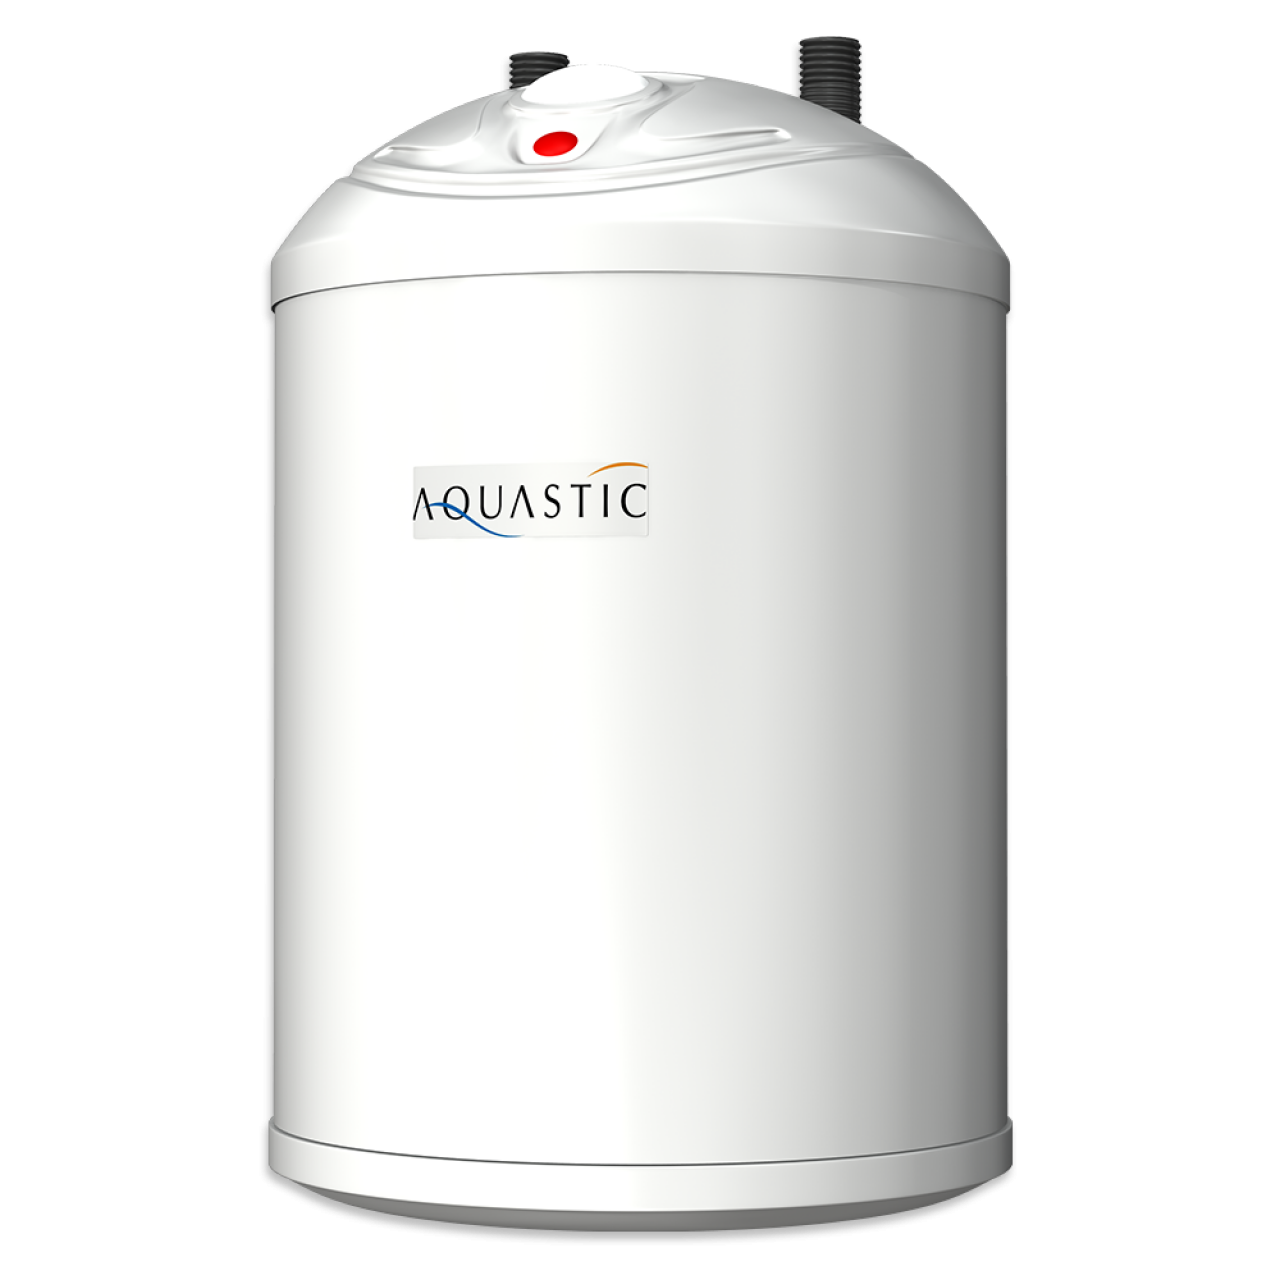 Aquastic AQ 10 A